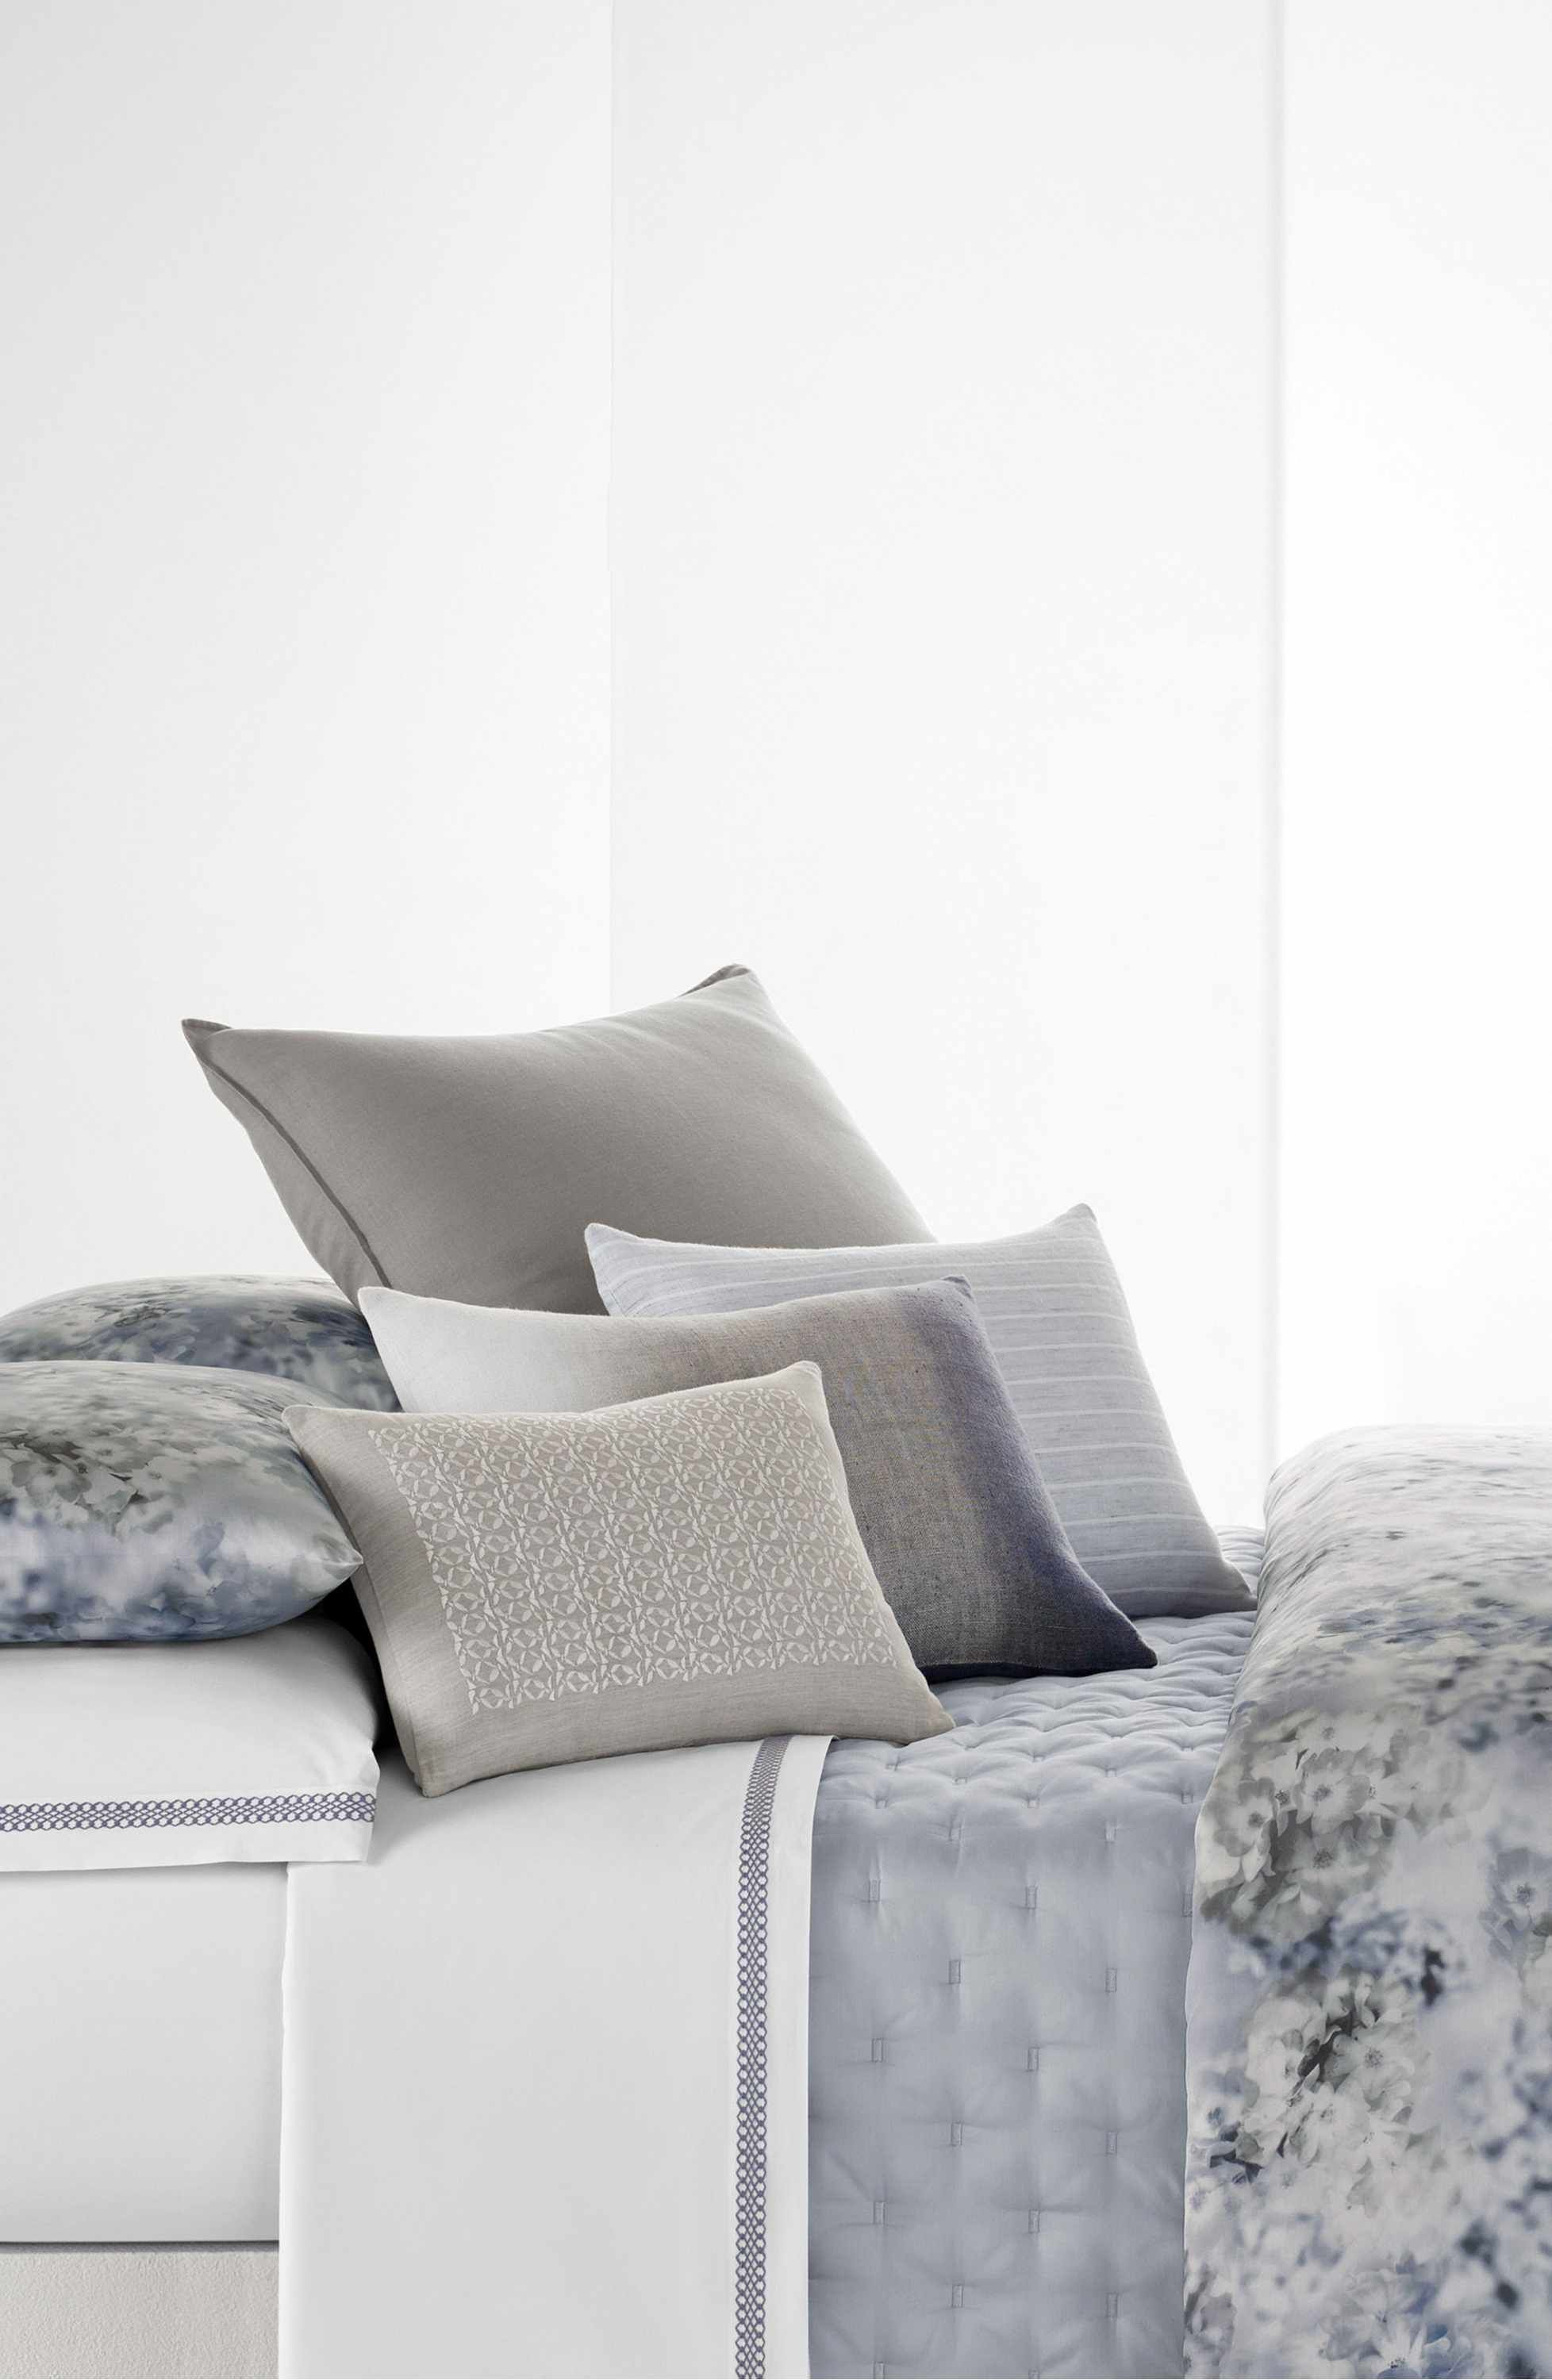 veiled bouquet 300 thread count duvet cover duvet count and